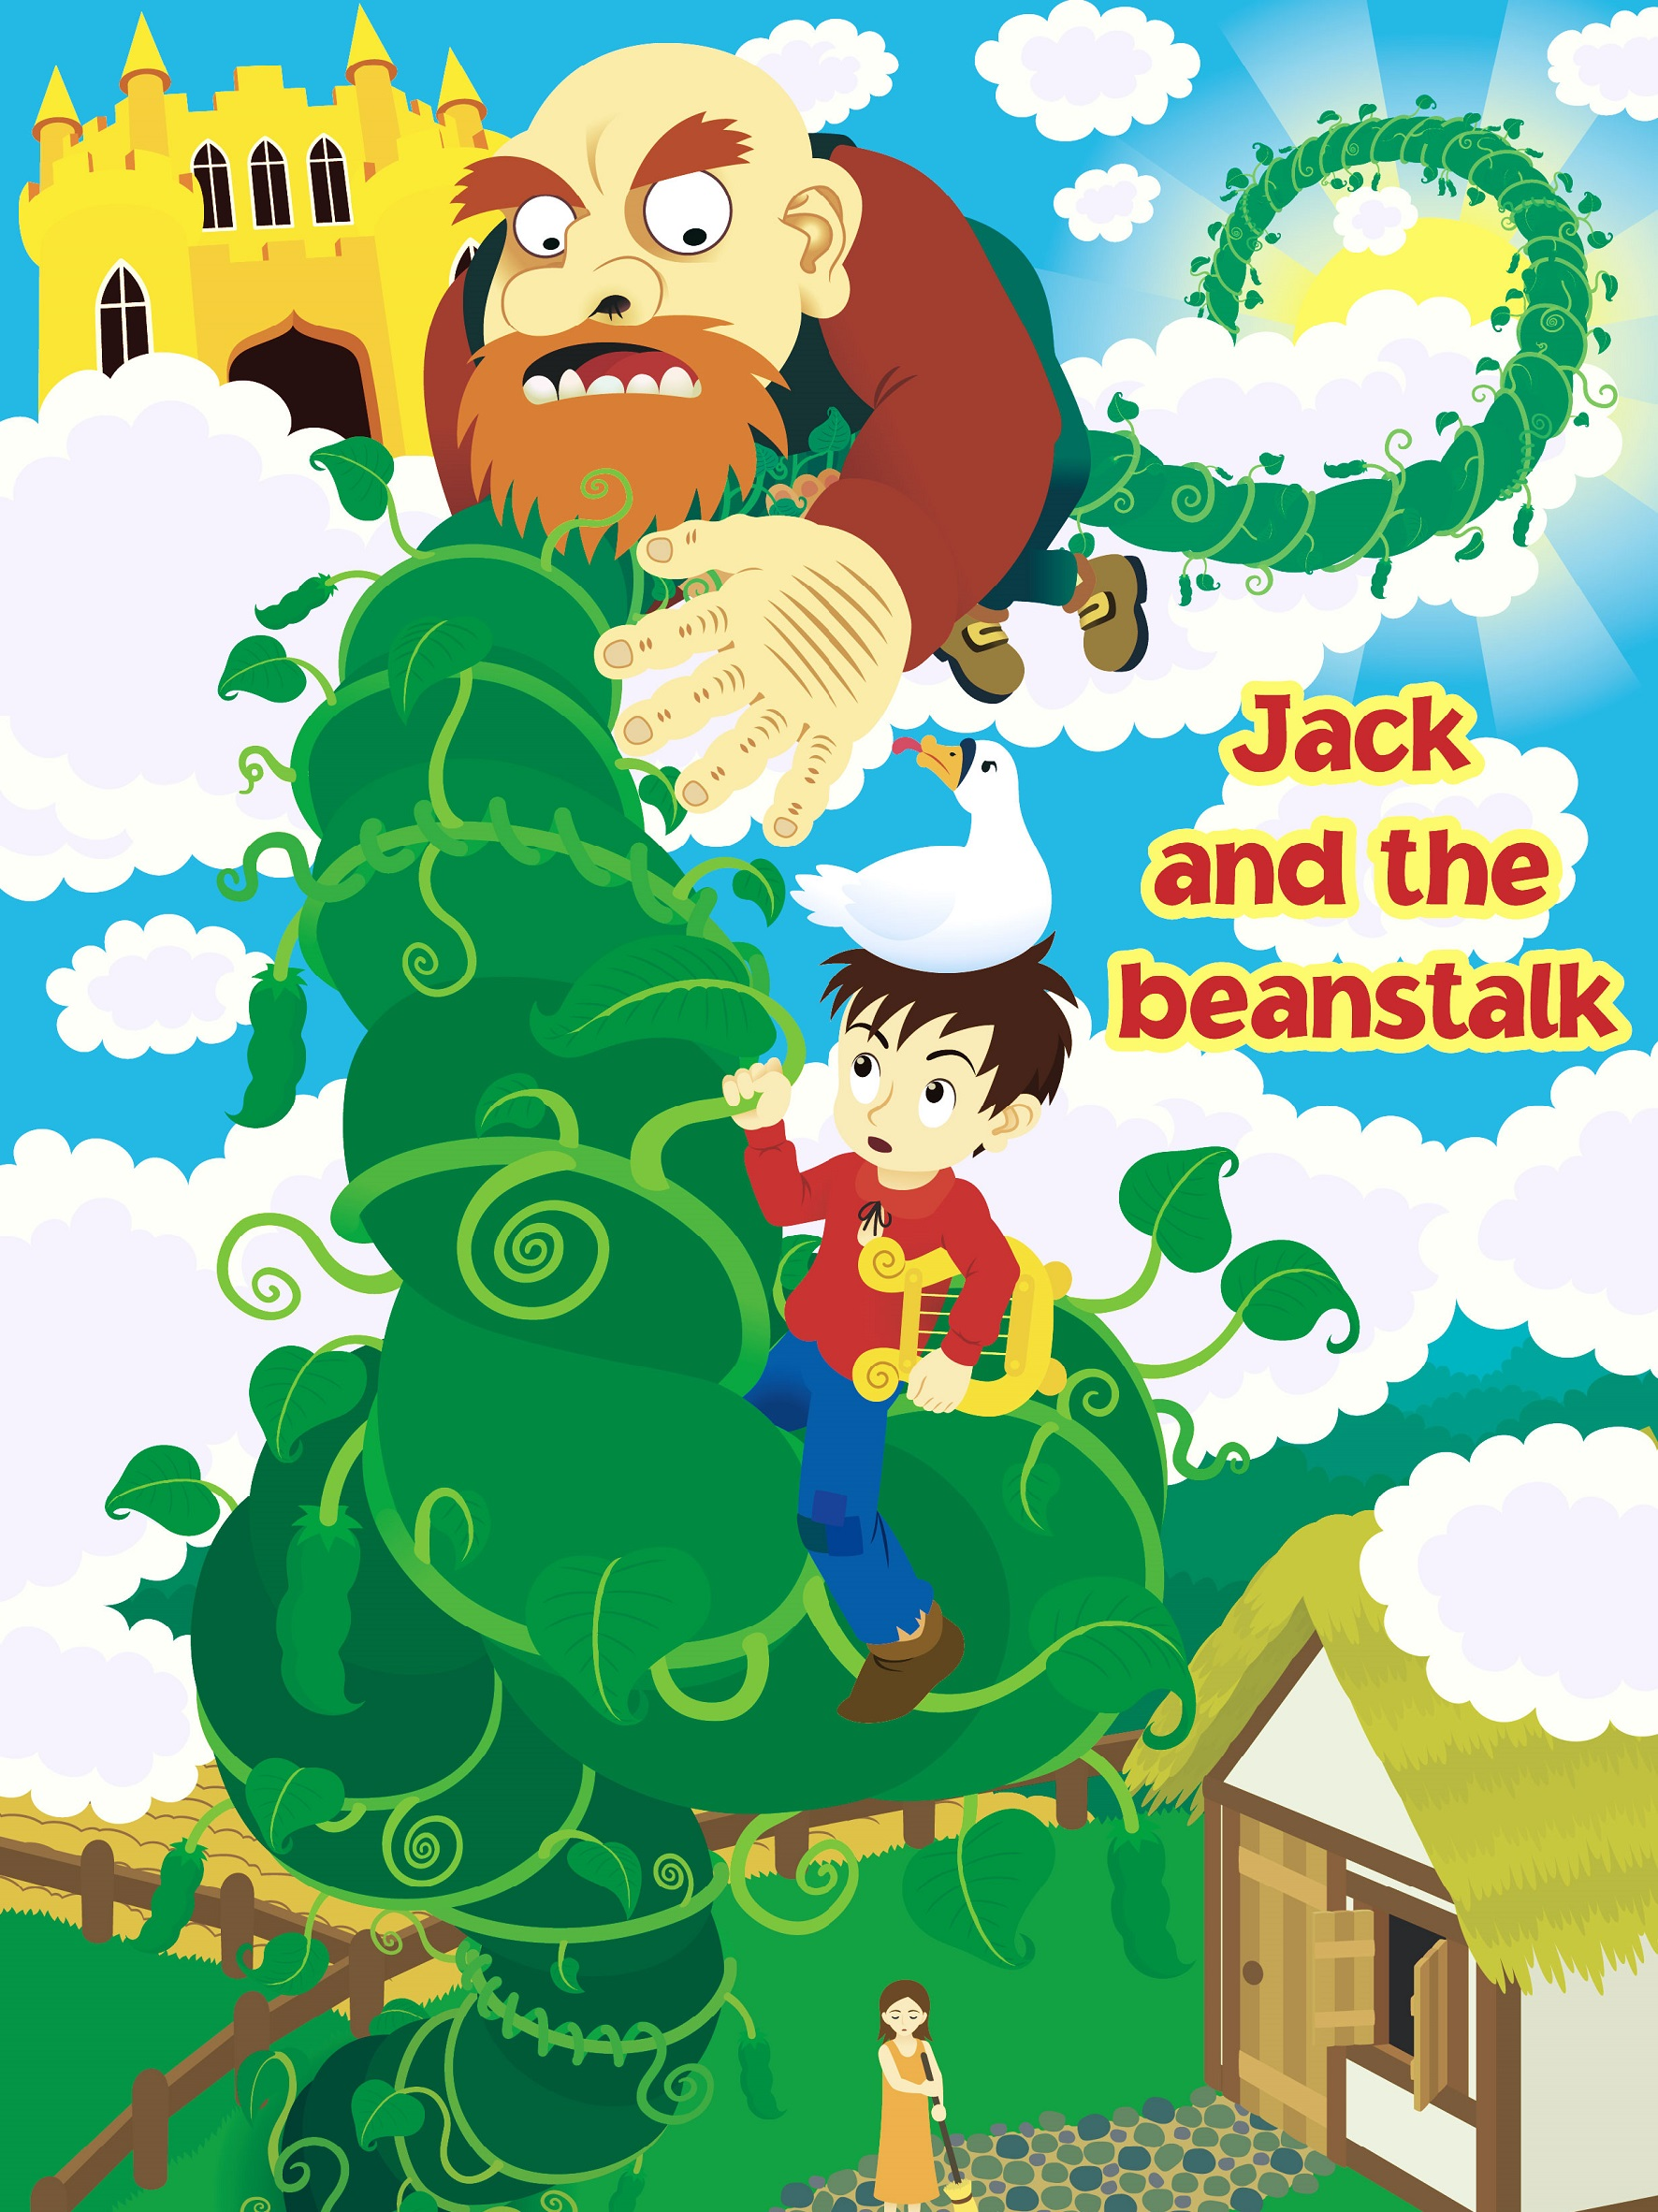 jack-and-the-beanstalk-images-fun